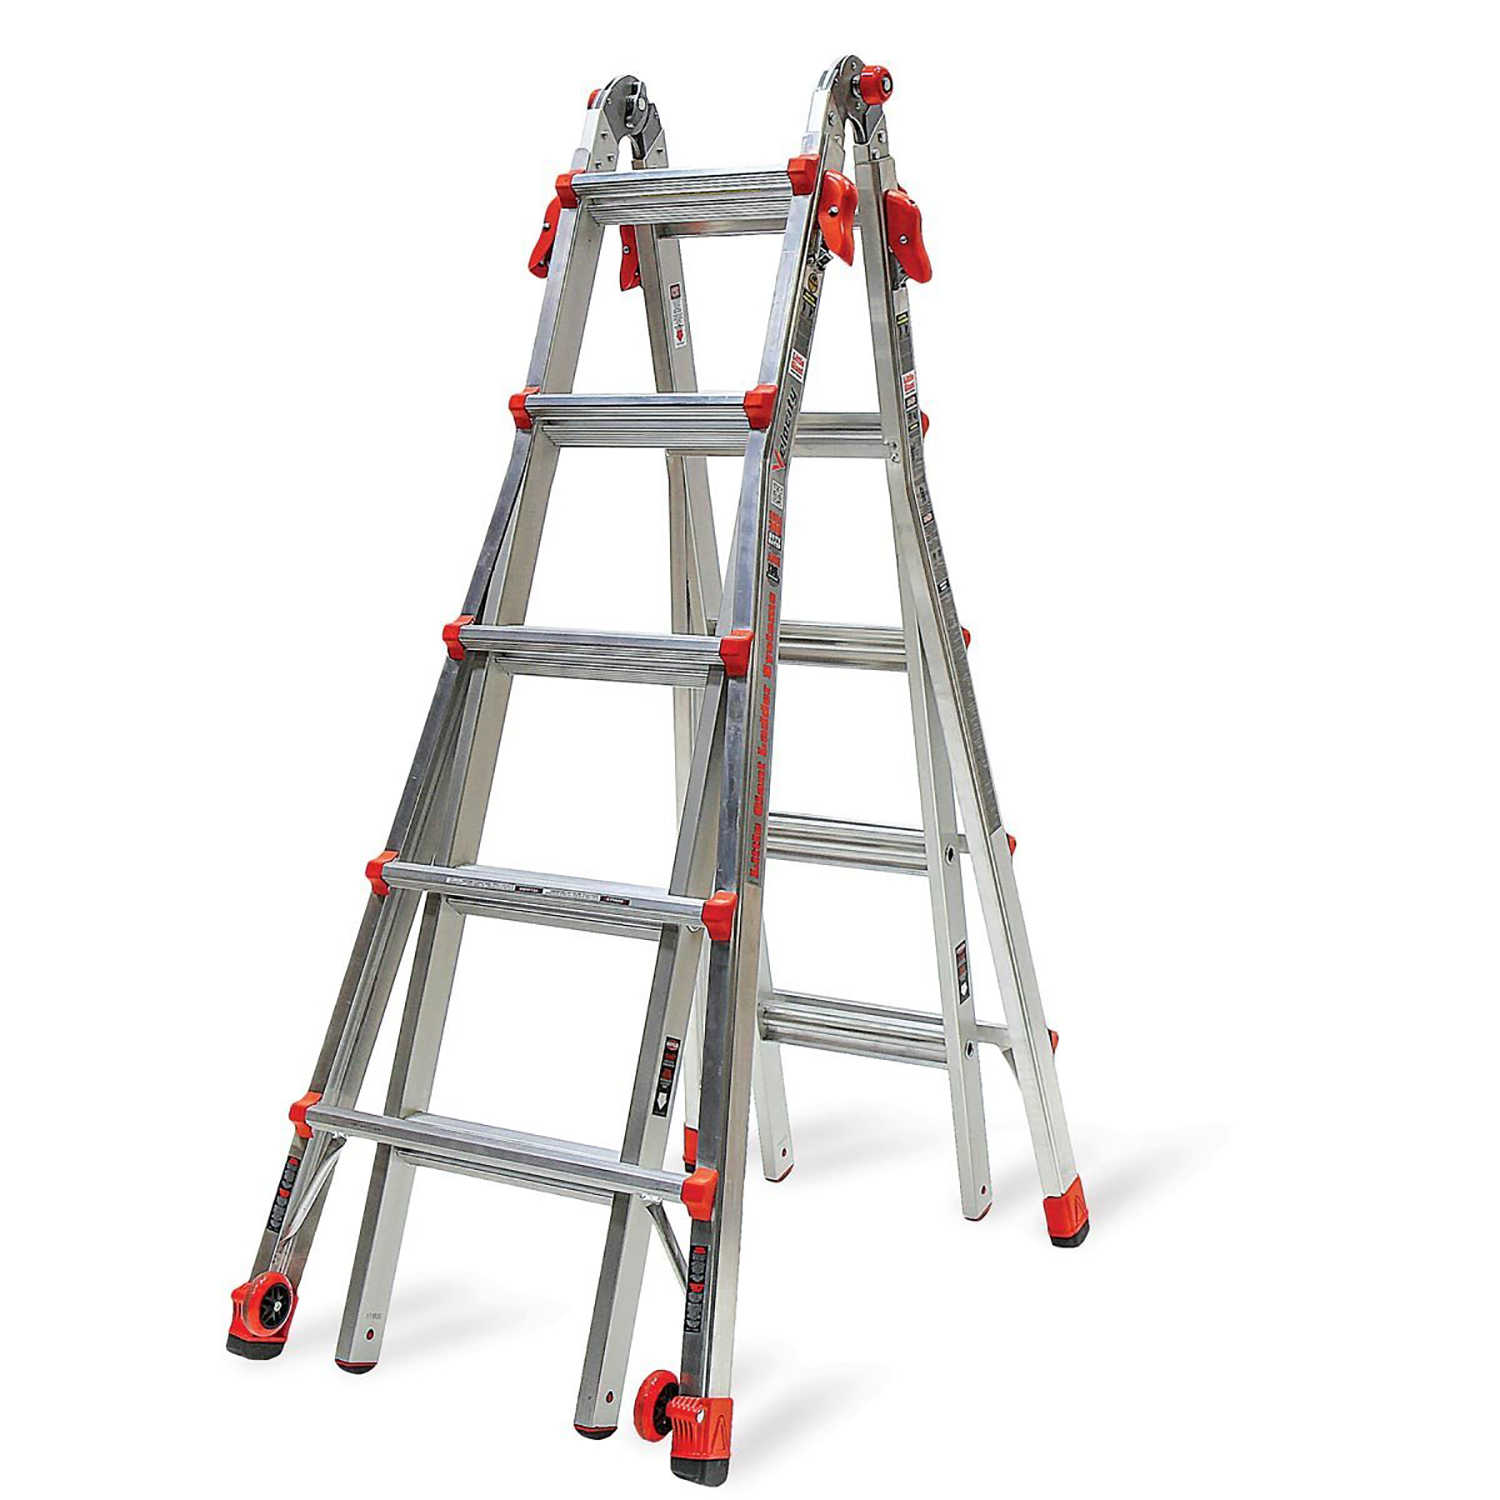 Little Giant Ladder Systems 22 Ft Aluminum Ladder w/ 375 LB Rated Work Platform